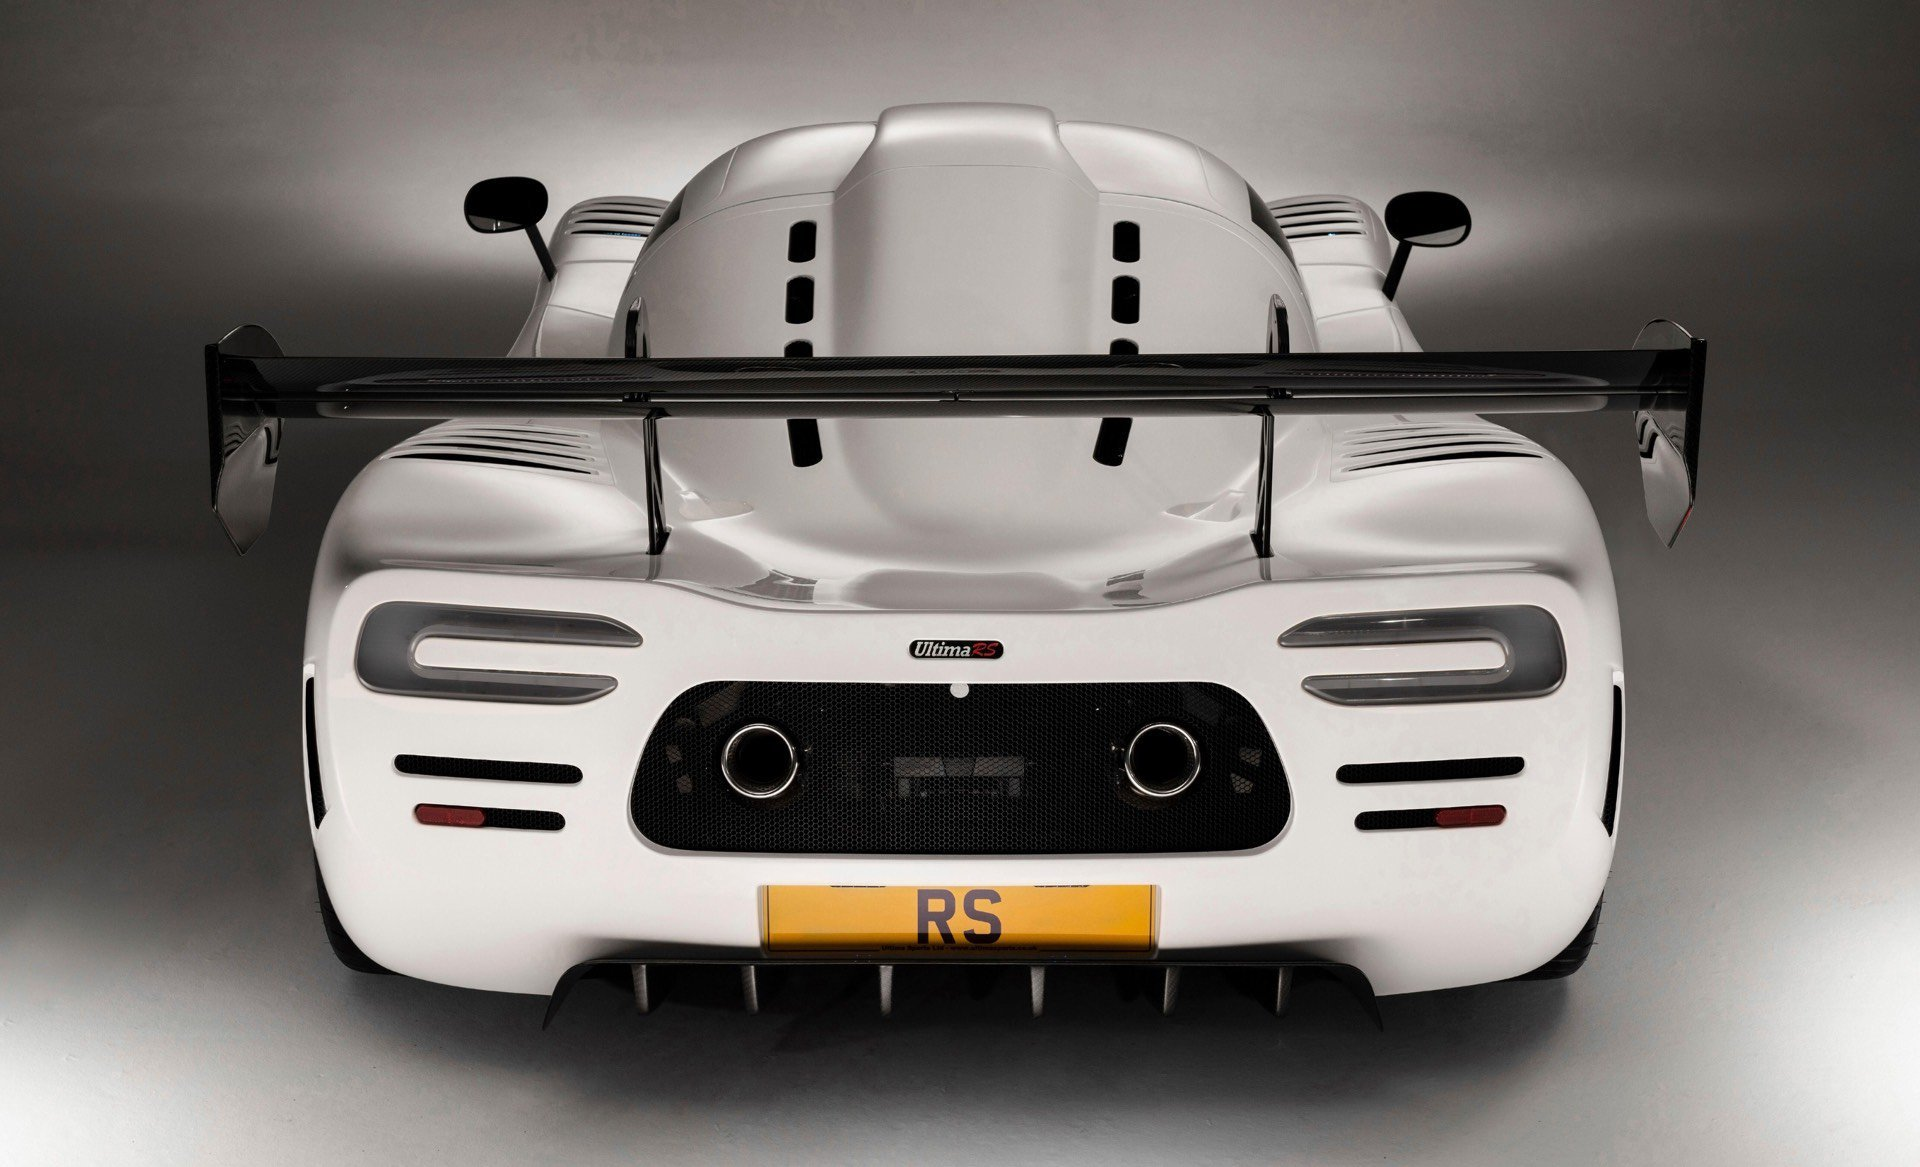 Ultima Rs 2019 7